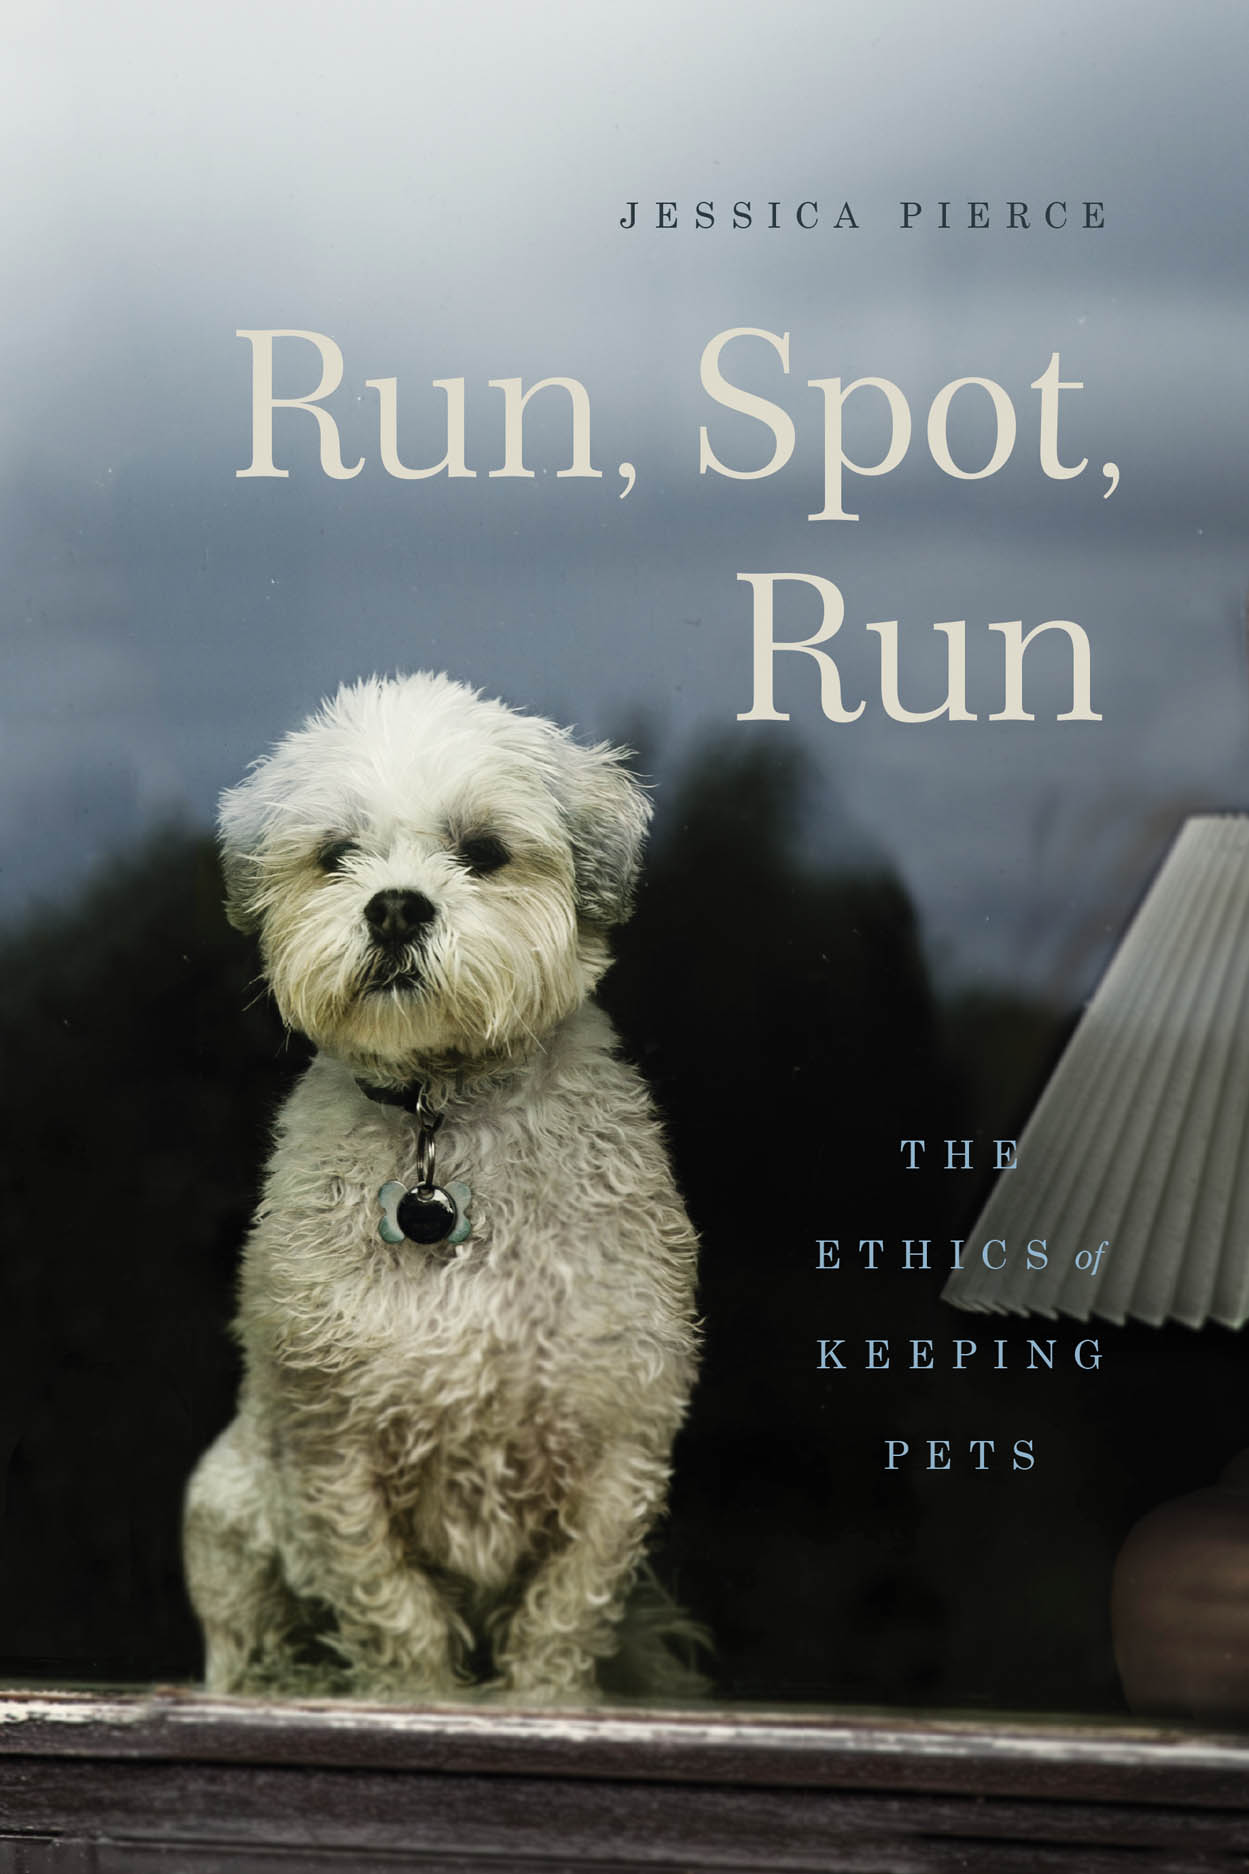 Cover image for Run, Spot, Run by Jessica Pierce